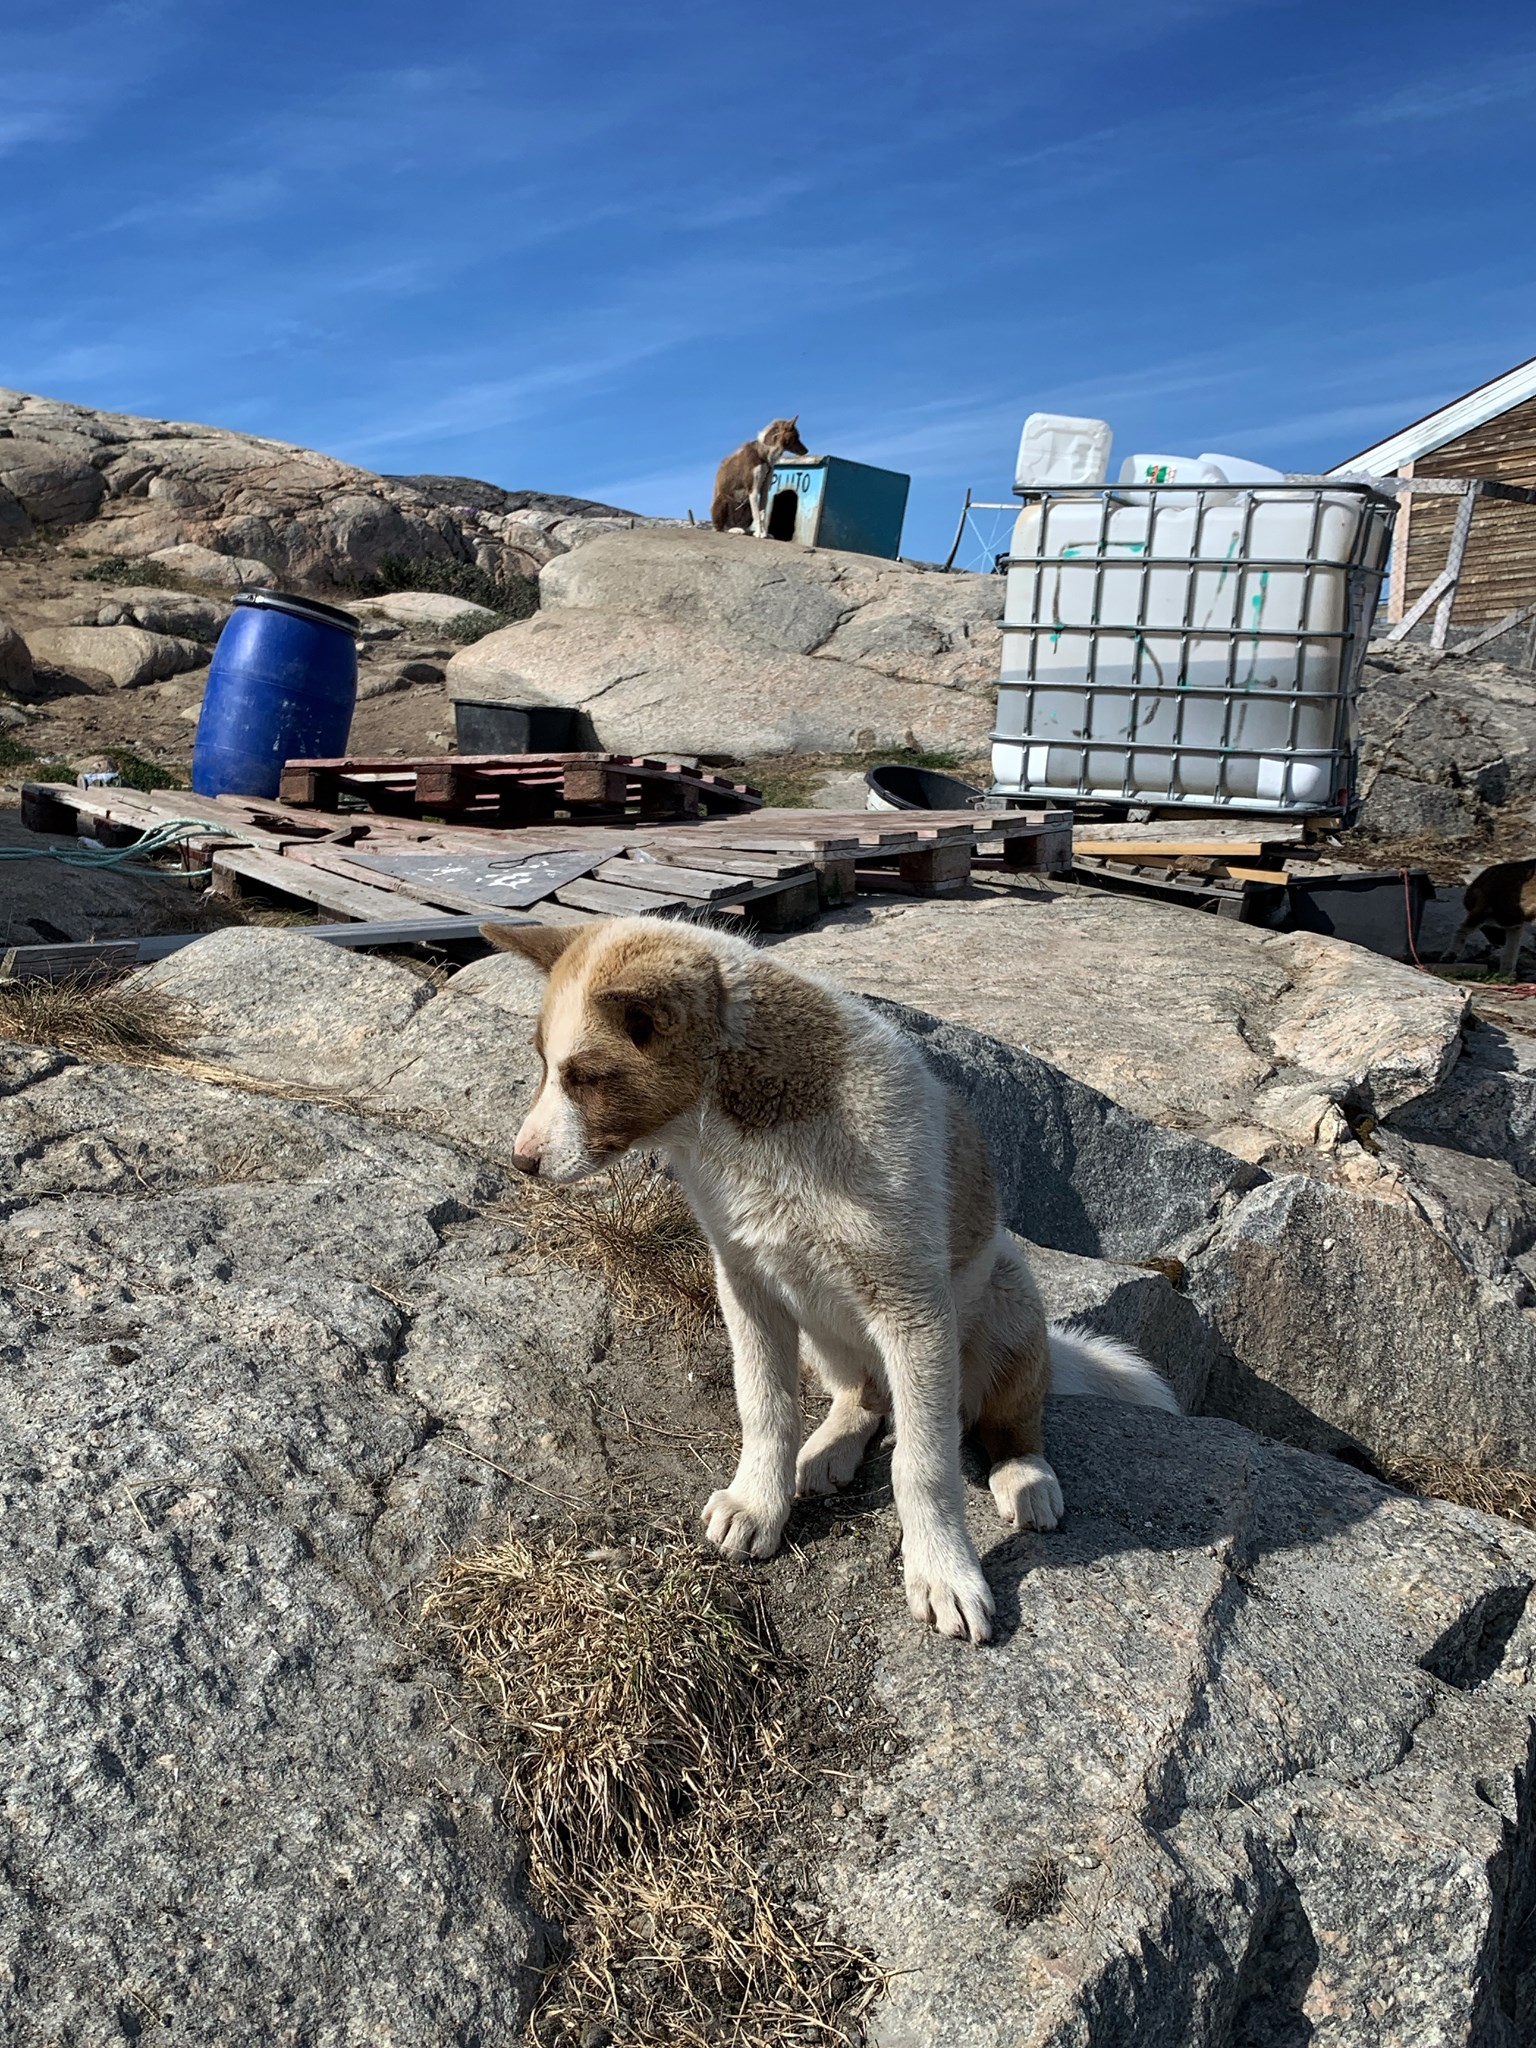 There are probably more sled dogs than people in Ilulissat.